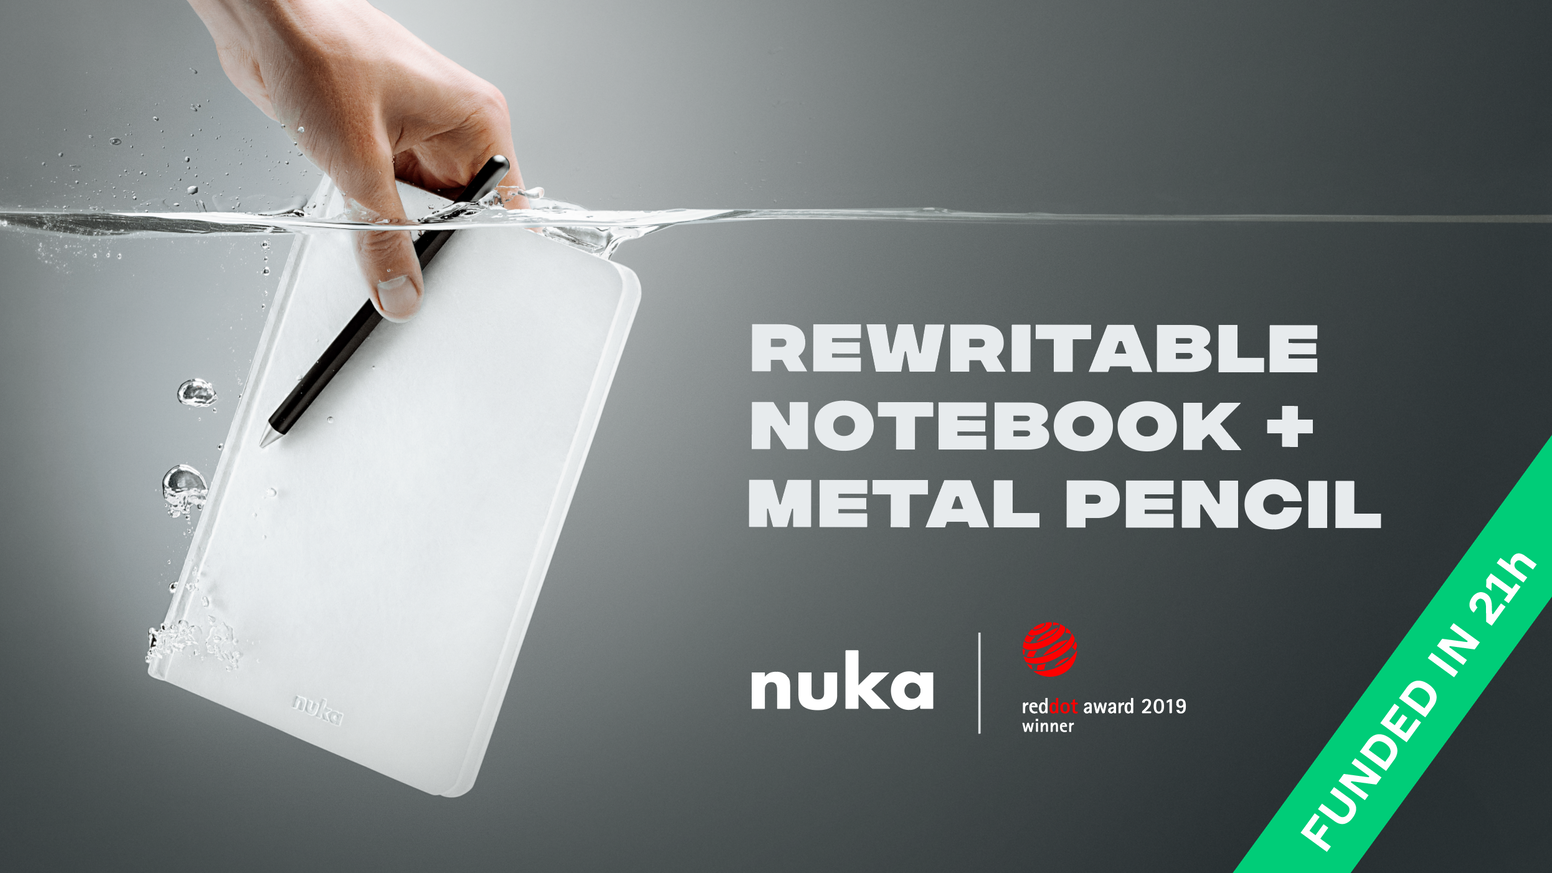 Fully rewritable and waterproof notebook. Eternal metal pencil.